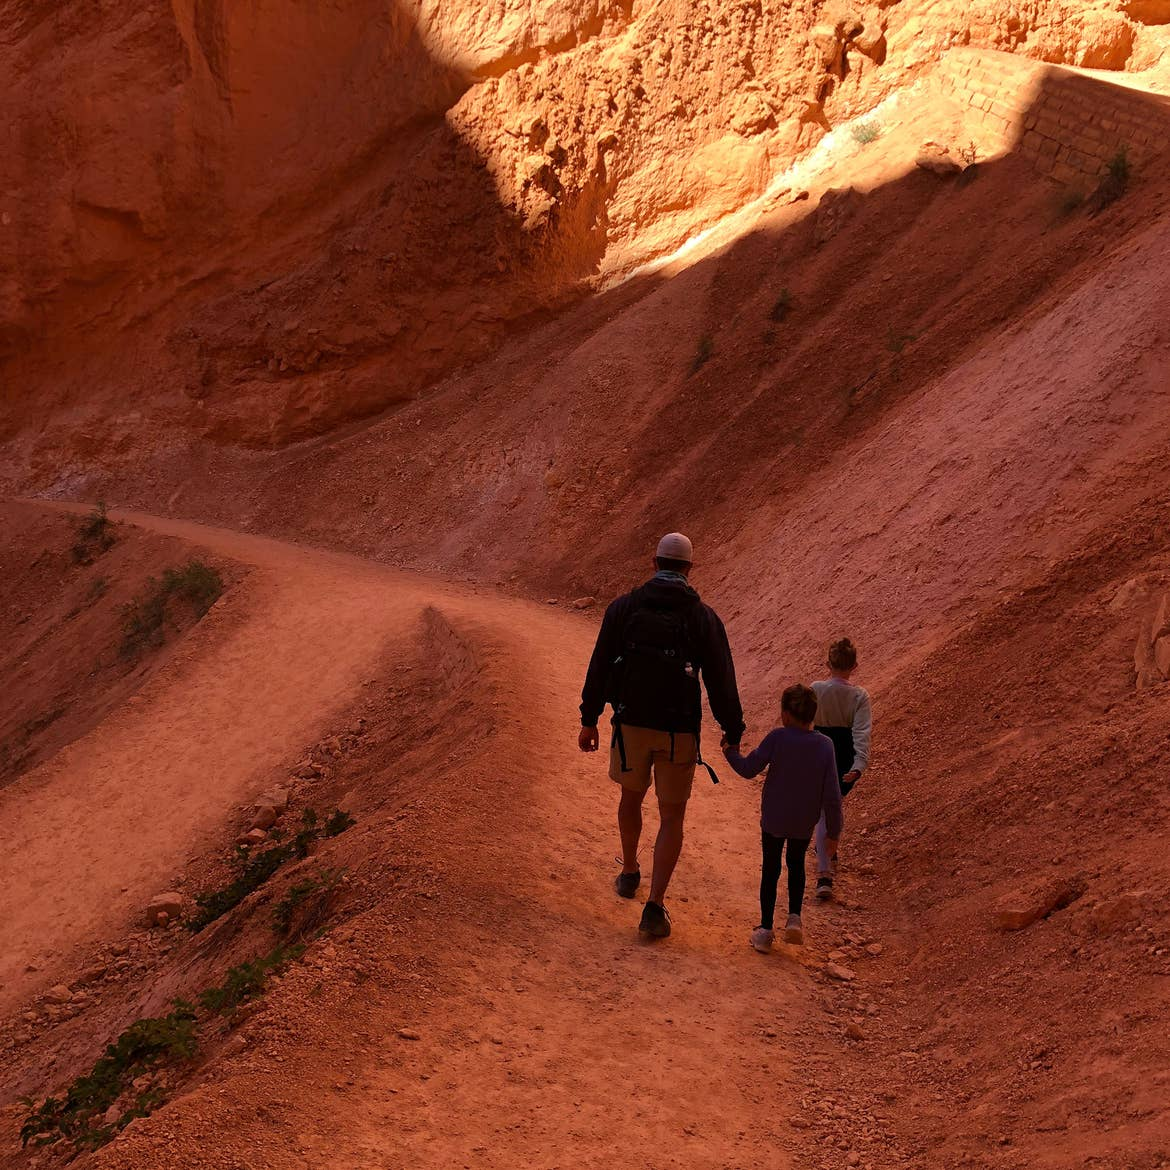 Josh (left) Kyndall and Kyler (right) walk amongst the red rock formation at Bryce Canyon.